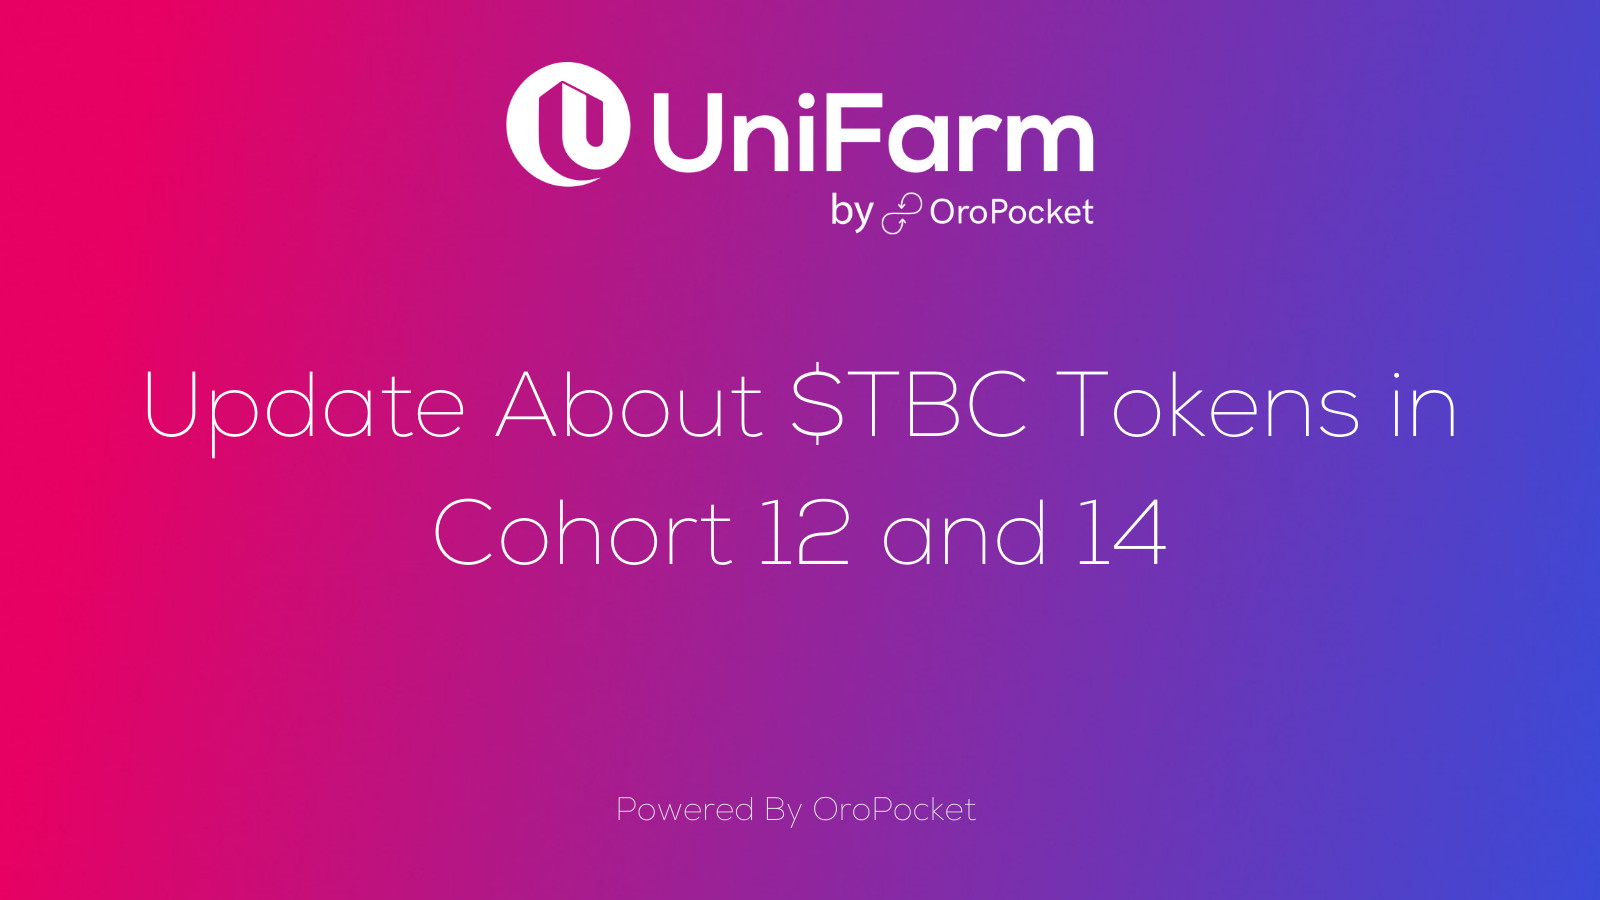 Update About $TBC Tokens in Cohort 12 and 14